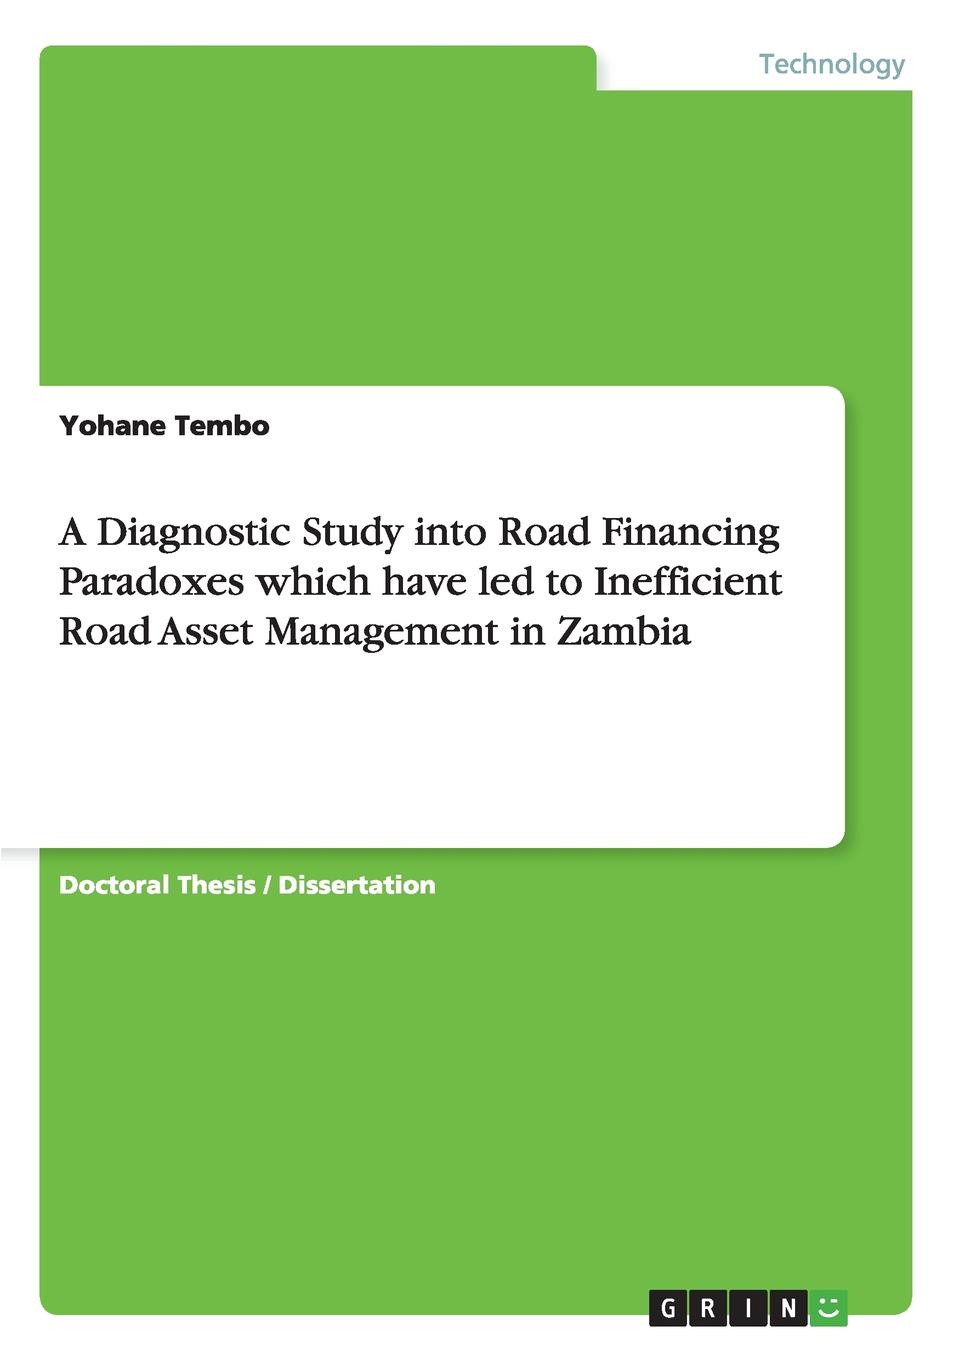 Yohane Tembo A Diagnostic Study into Road Financing Paradoxes which have led to Inefficient Road Asset Management in Zambia muse the road to the top